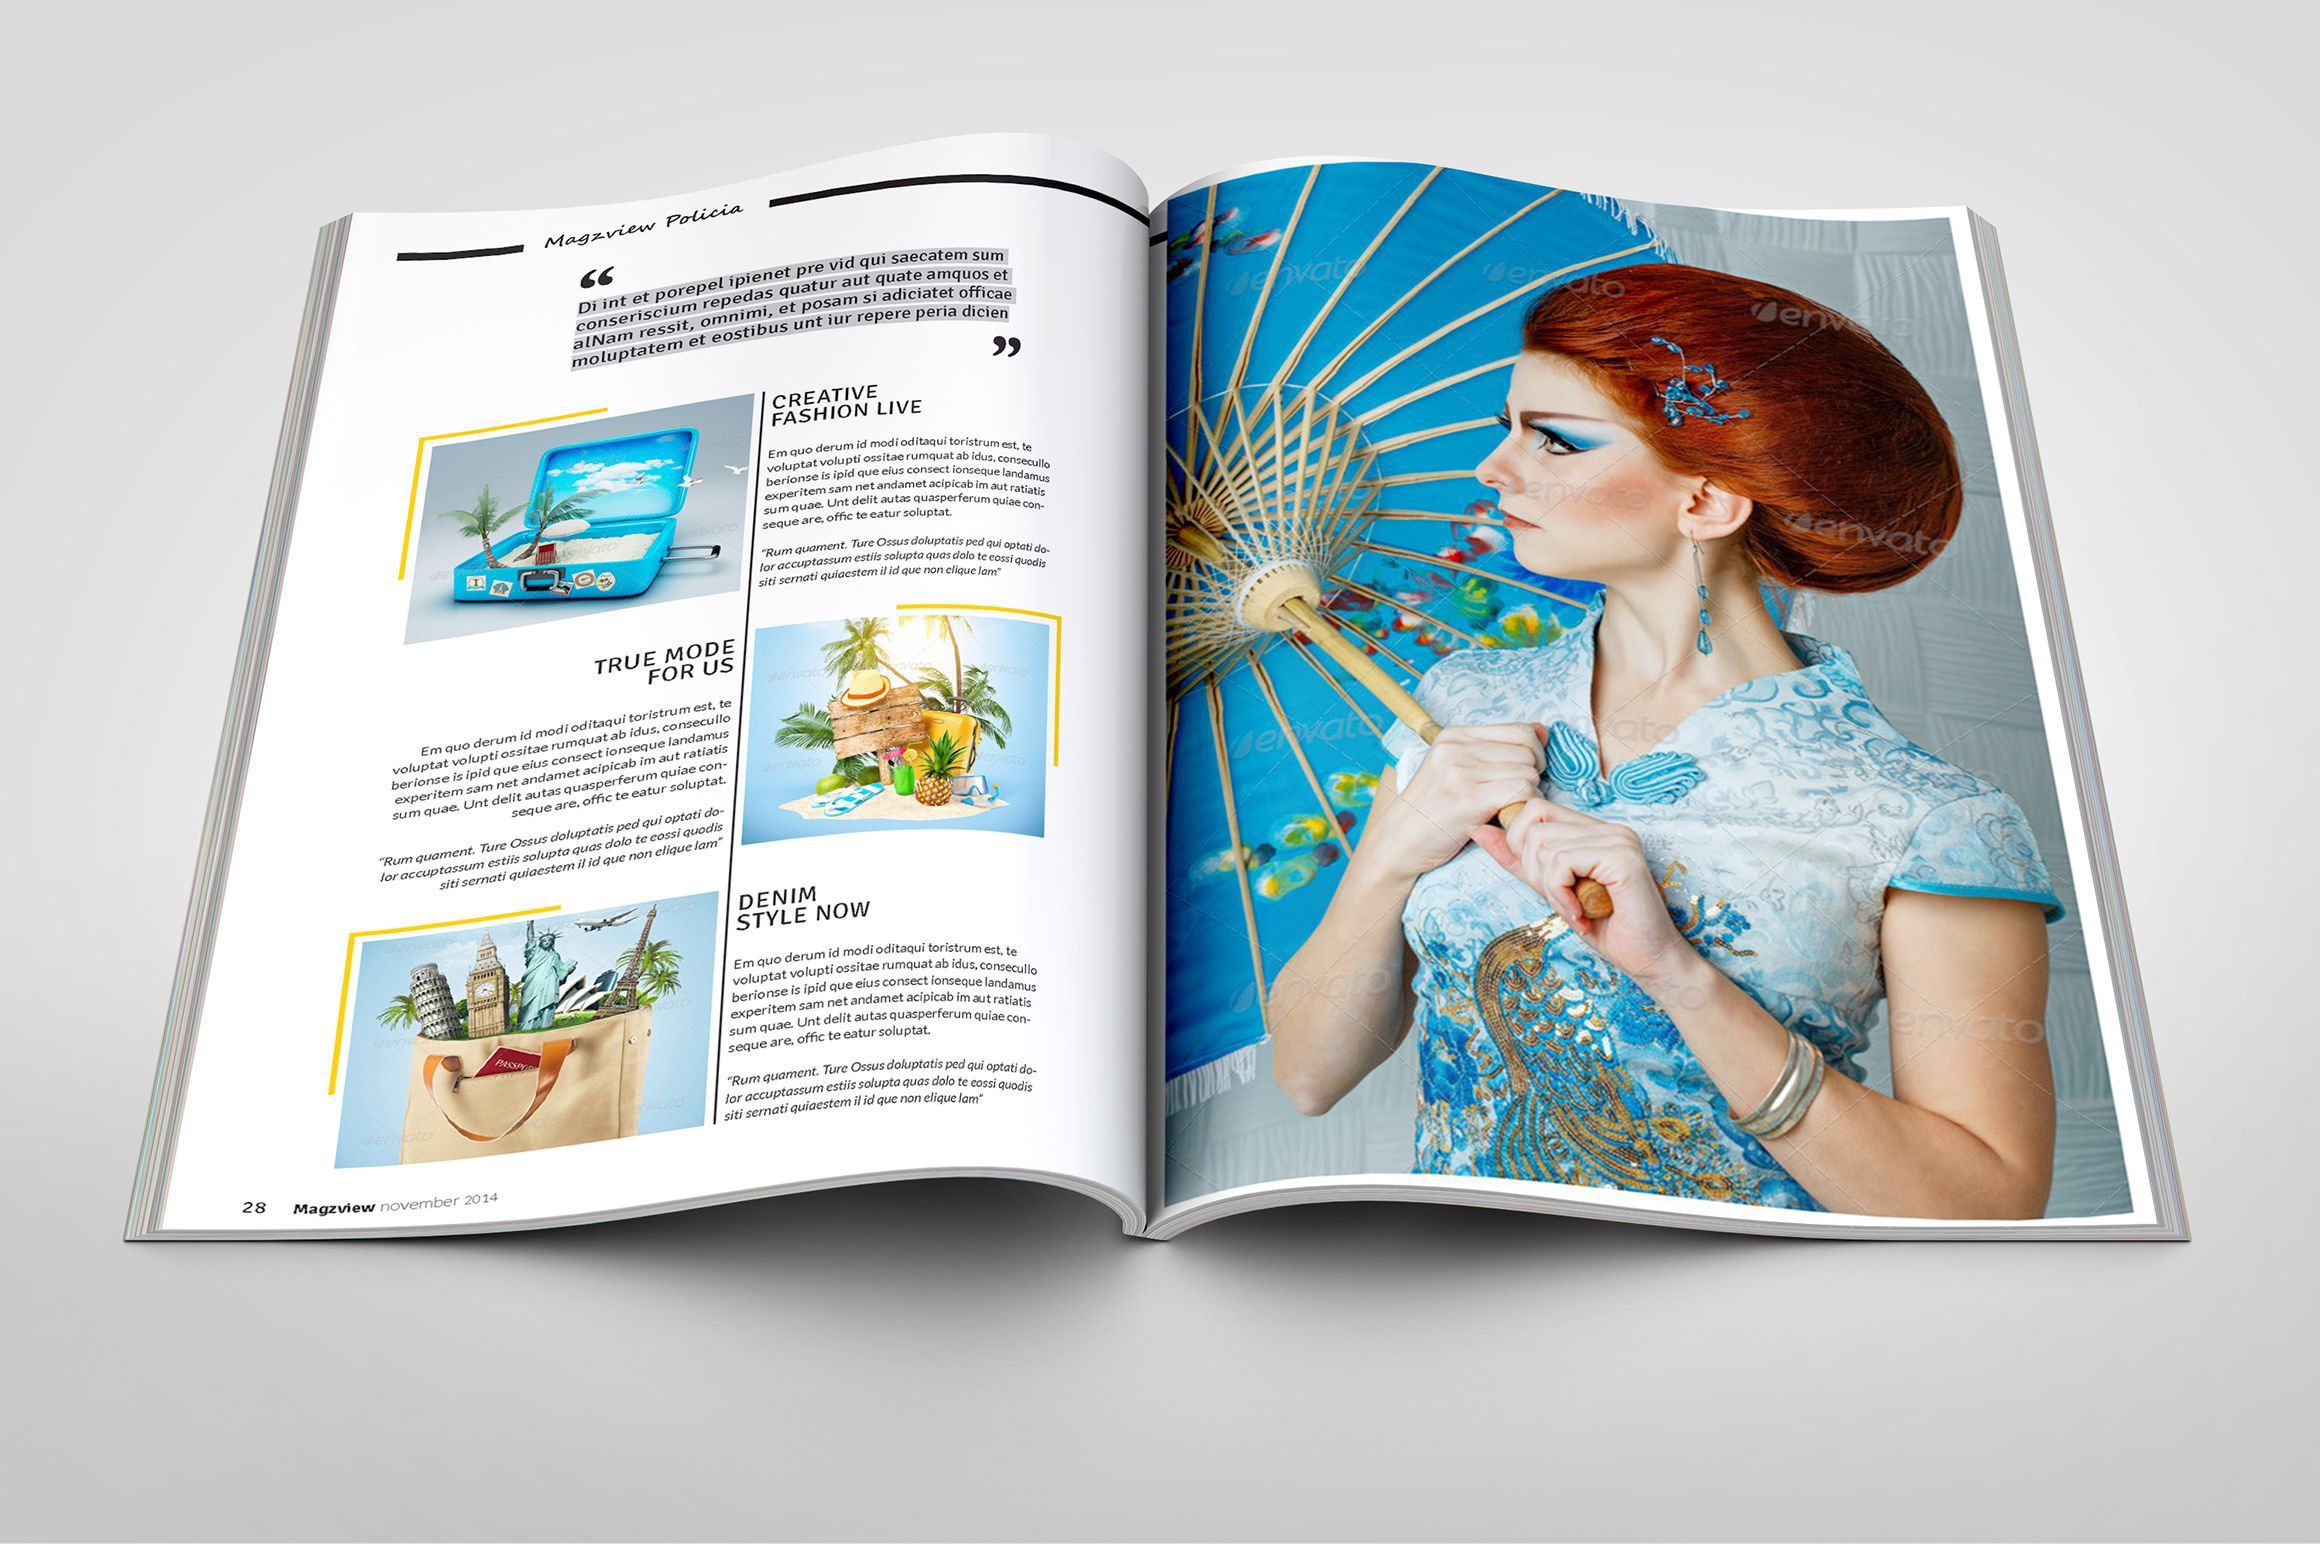 003 Unusual School Magazine Layout Template Free Download Image Full